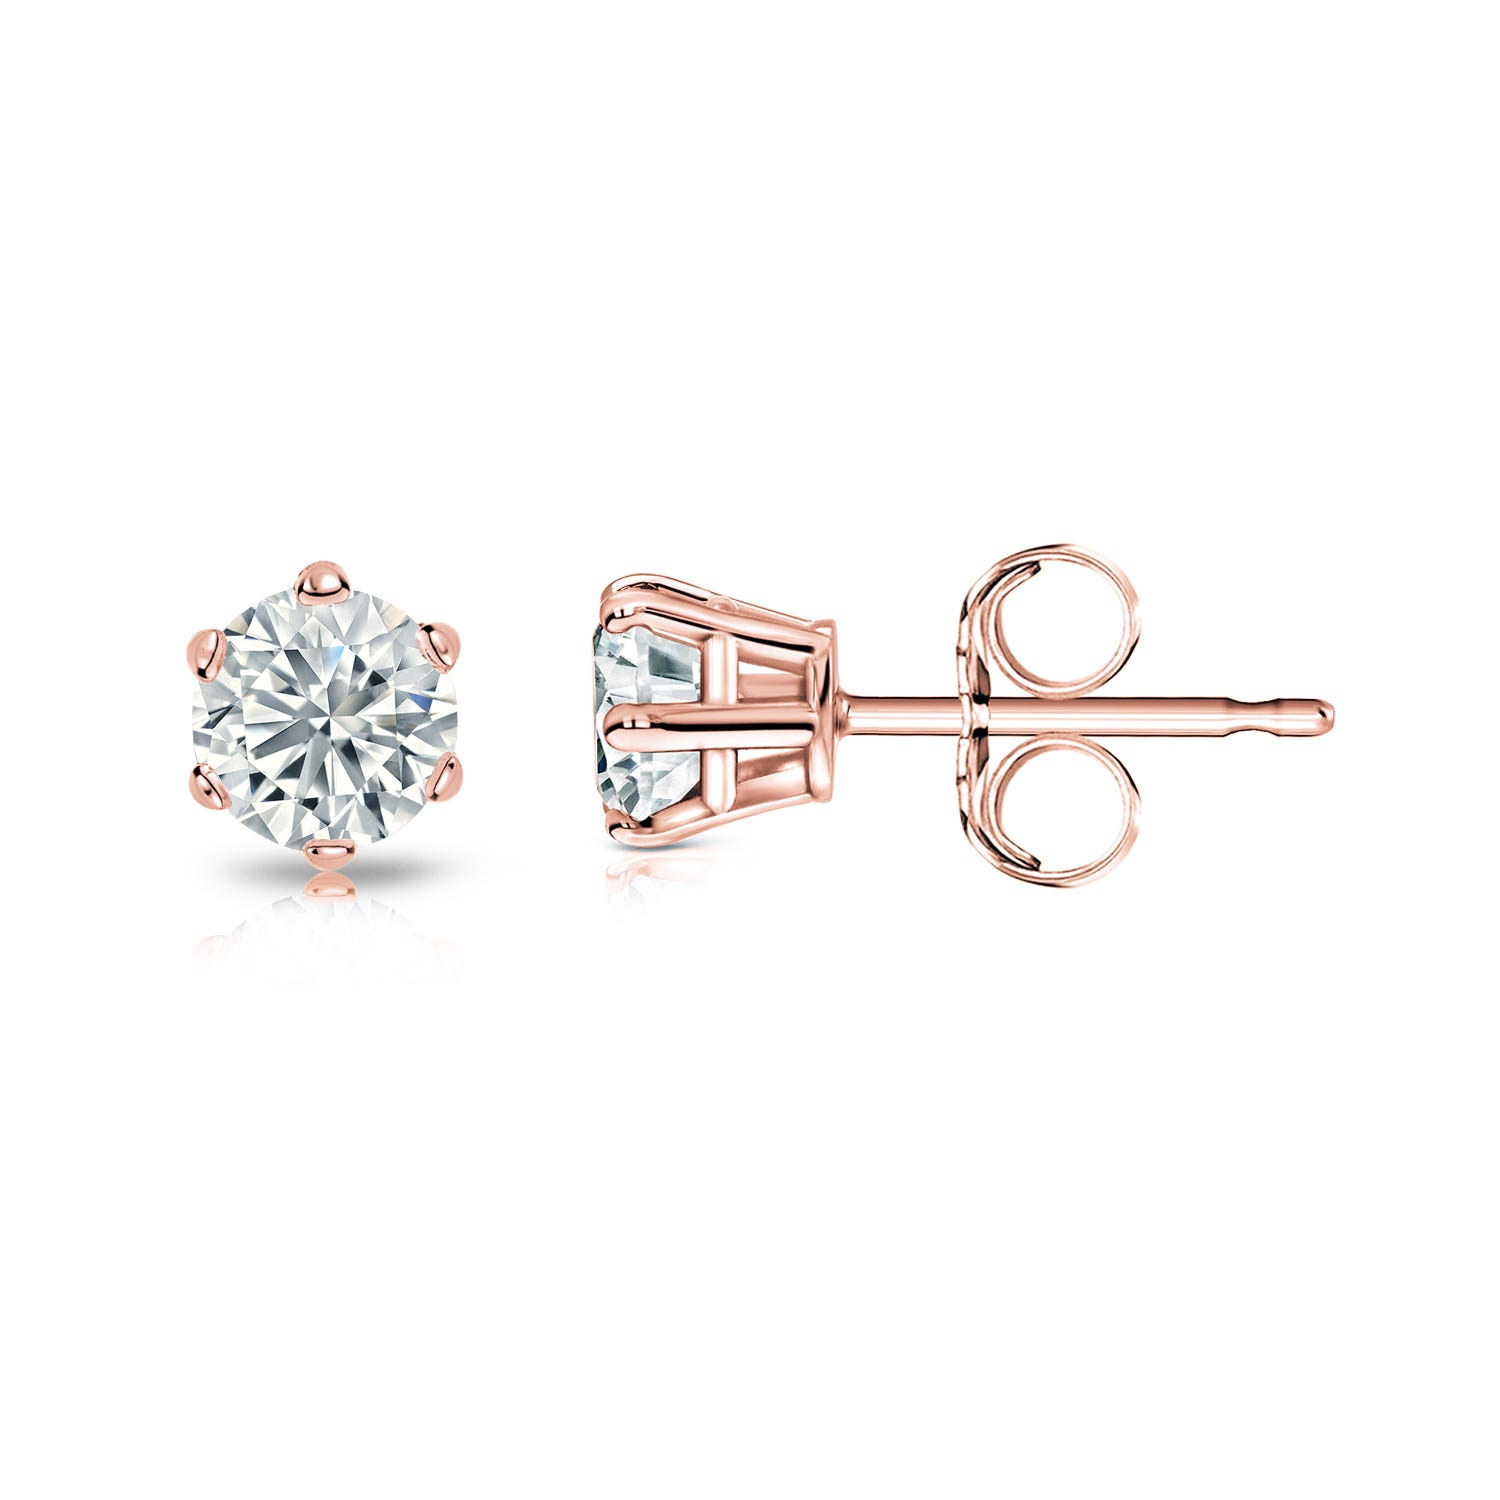 Round Diamond 1/10ctw. (IJ-SI1) Solitaire Stud 6-Prong Earrings in 14K Rose Gold